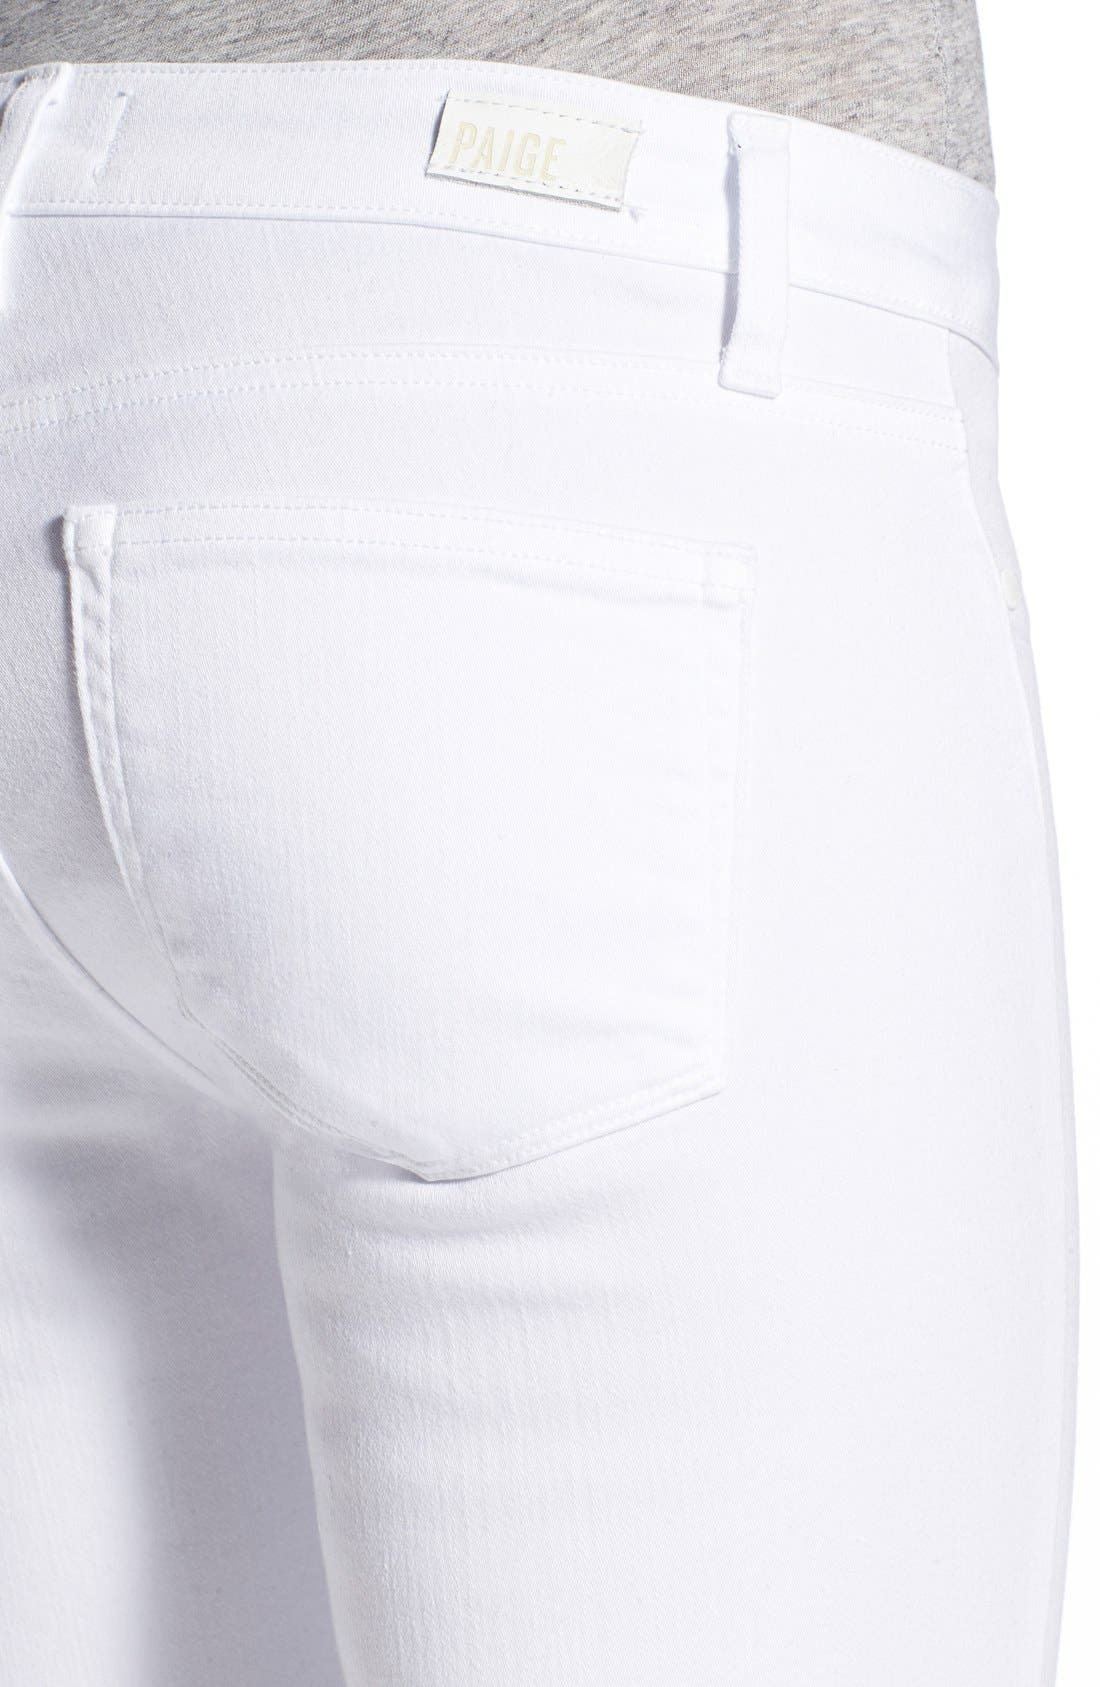 'Verdugo' Ankle Skinny Jeans,                             Alternate thumbnail 6, color,                             Ultra White